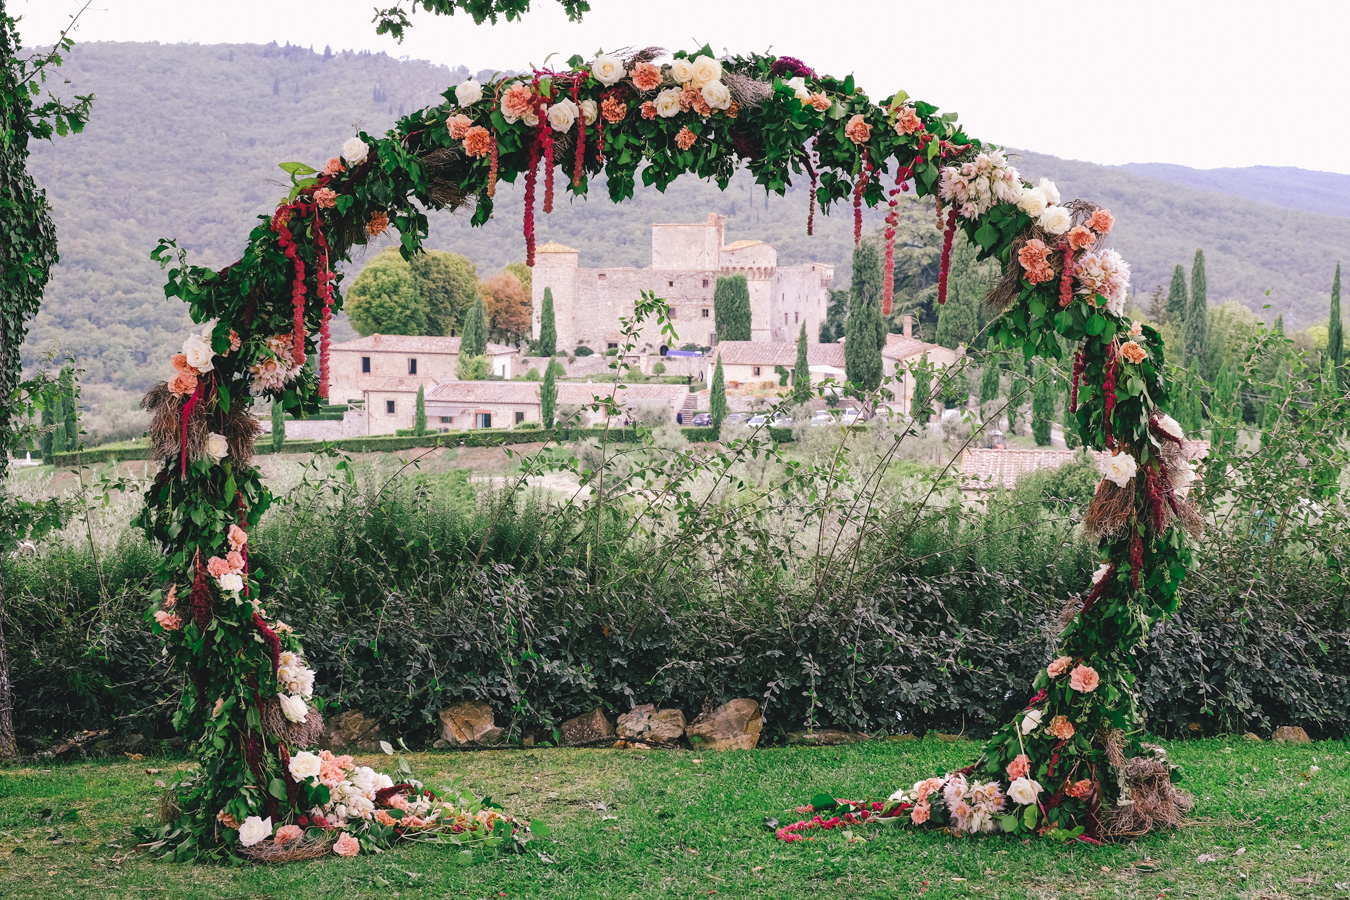 Wedding in tuscany wedding flowers destination weddings italy photography-013.jpg